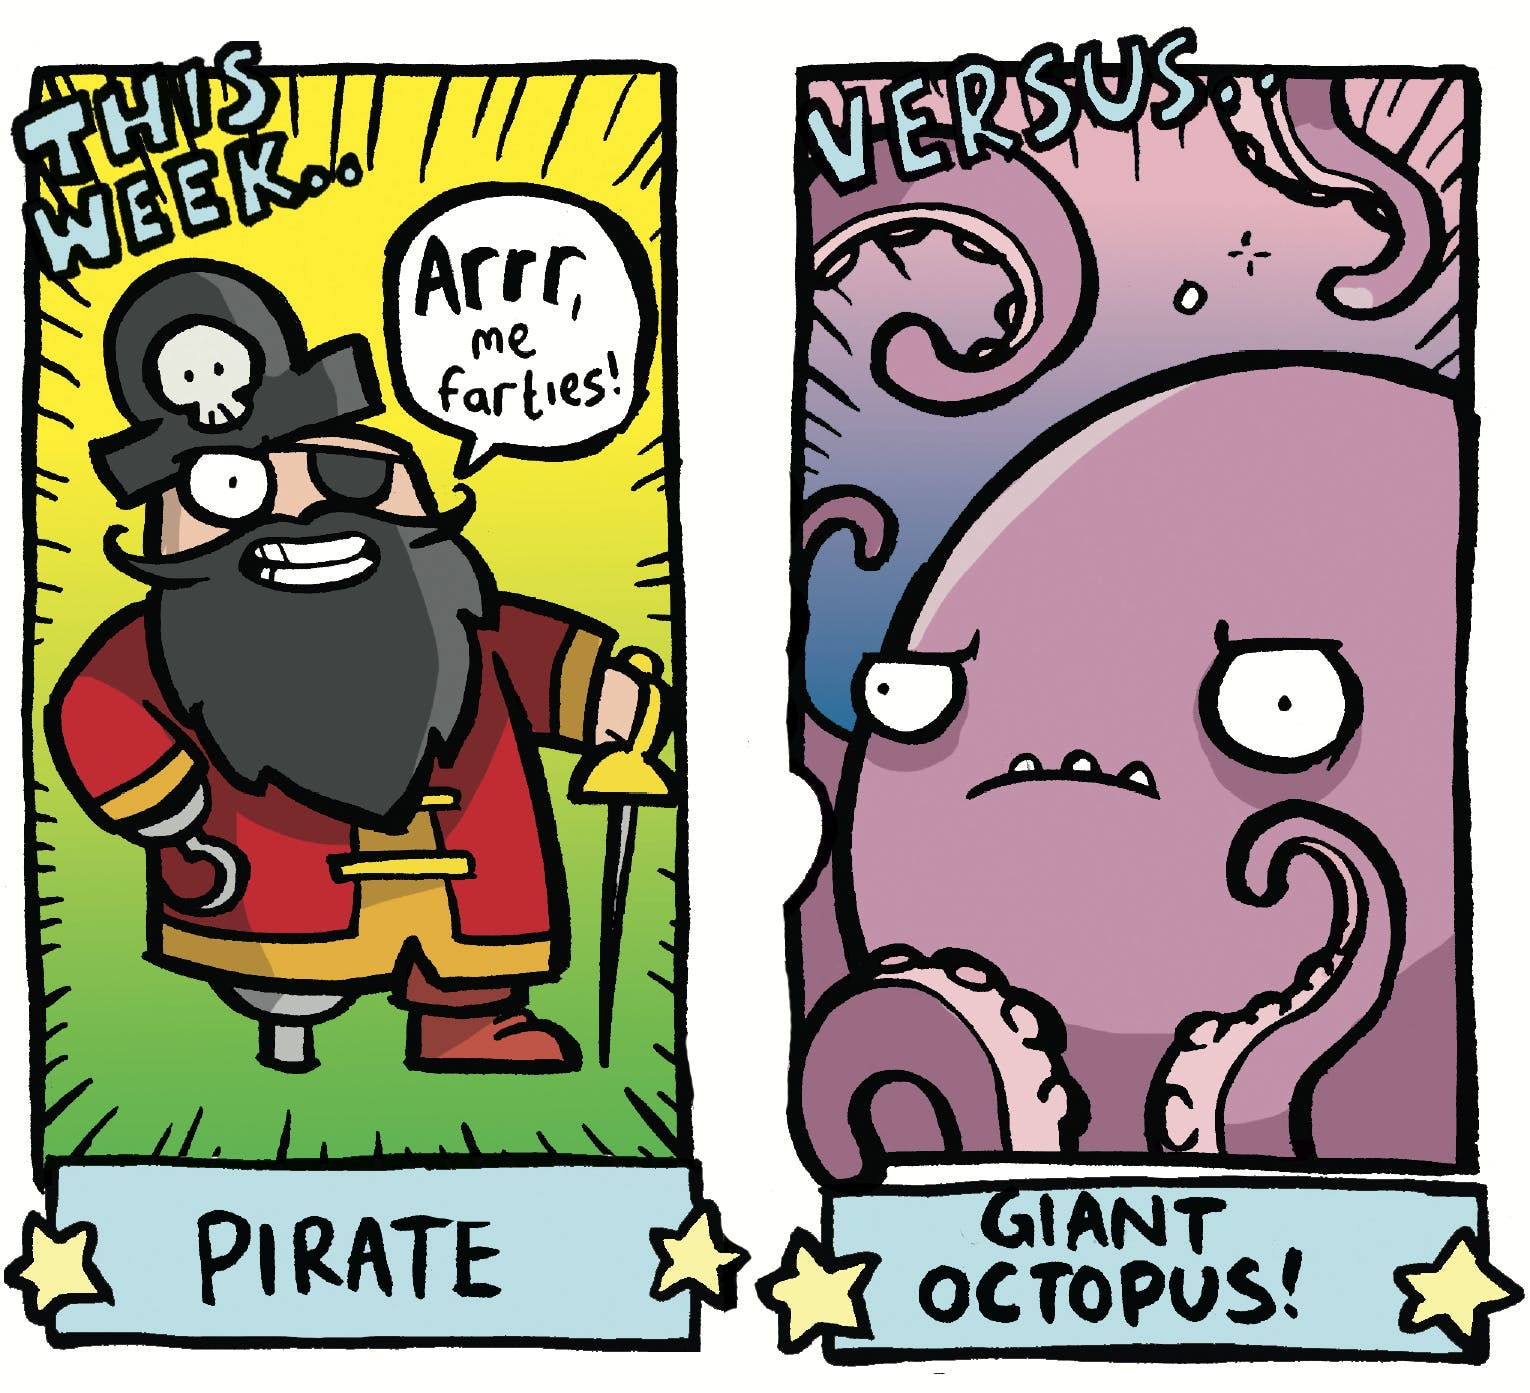 Arena of Awesome - Pirate Versus Giant Octopus